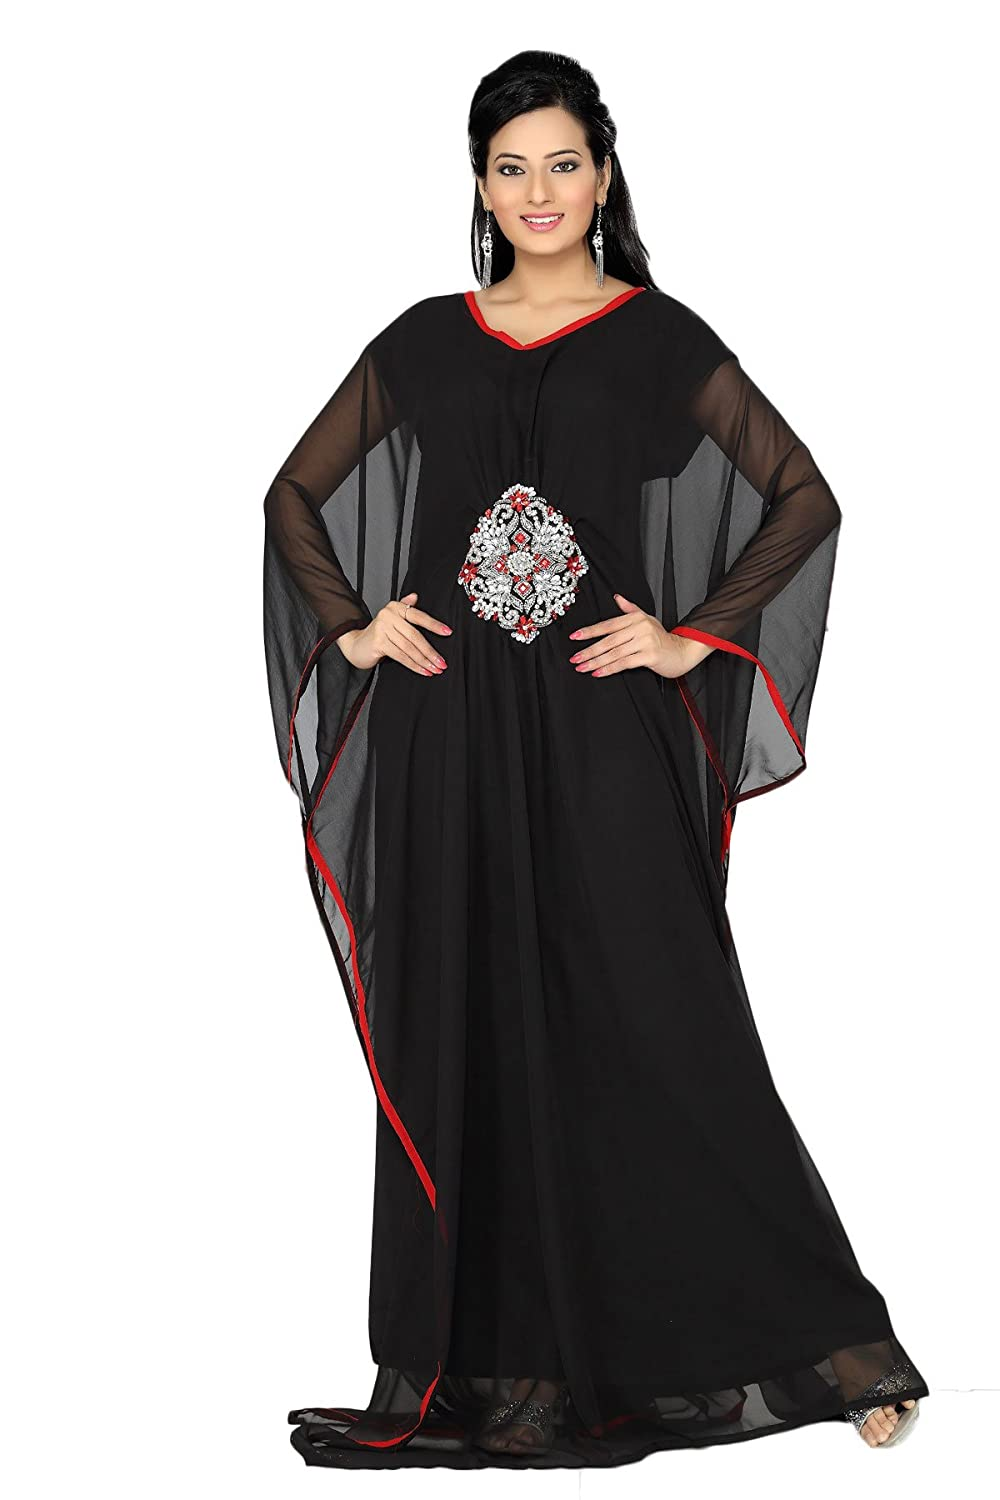 ANIIQ Women Farasha Muslim Islamic Black Georgette Embroidered Embelished Long Kaftan Dress SNM 198